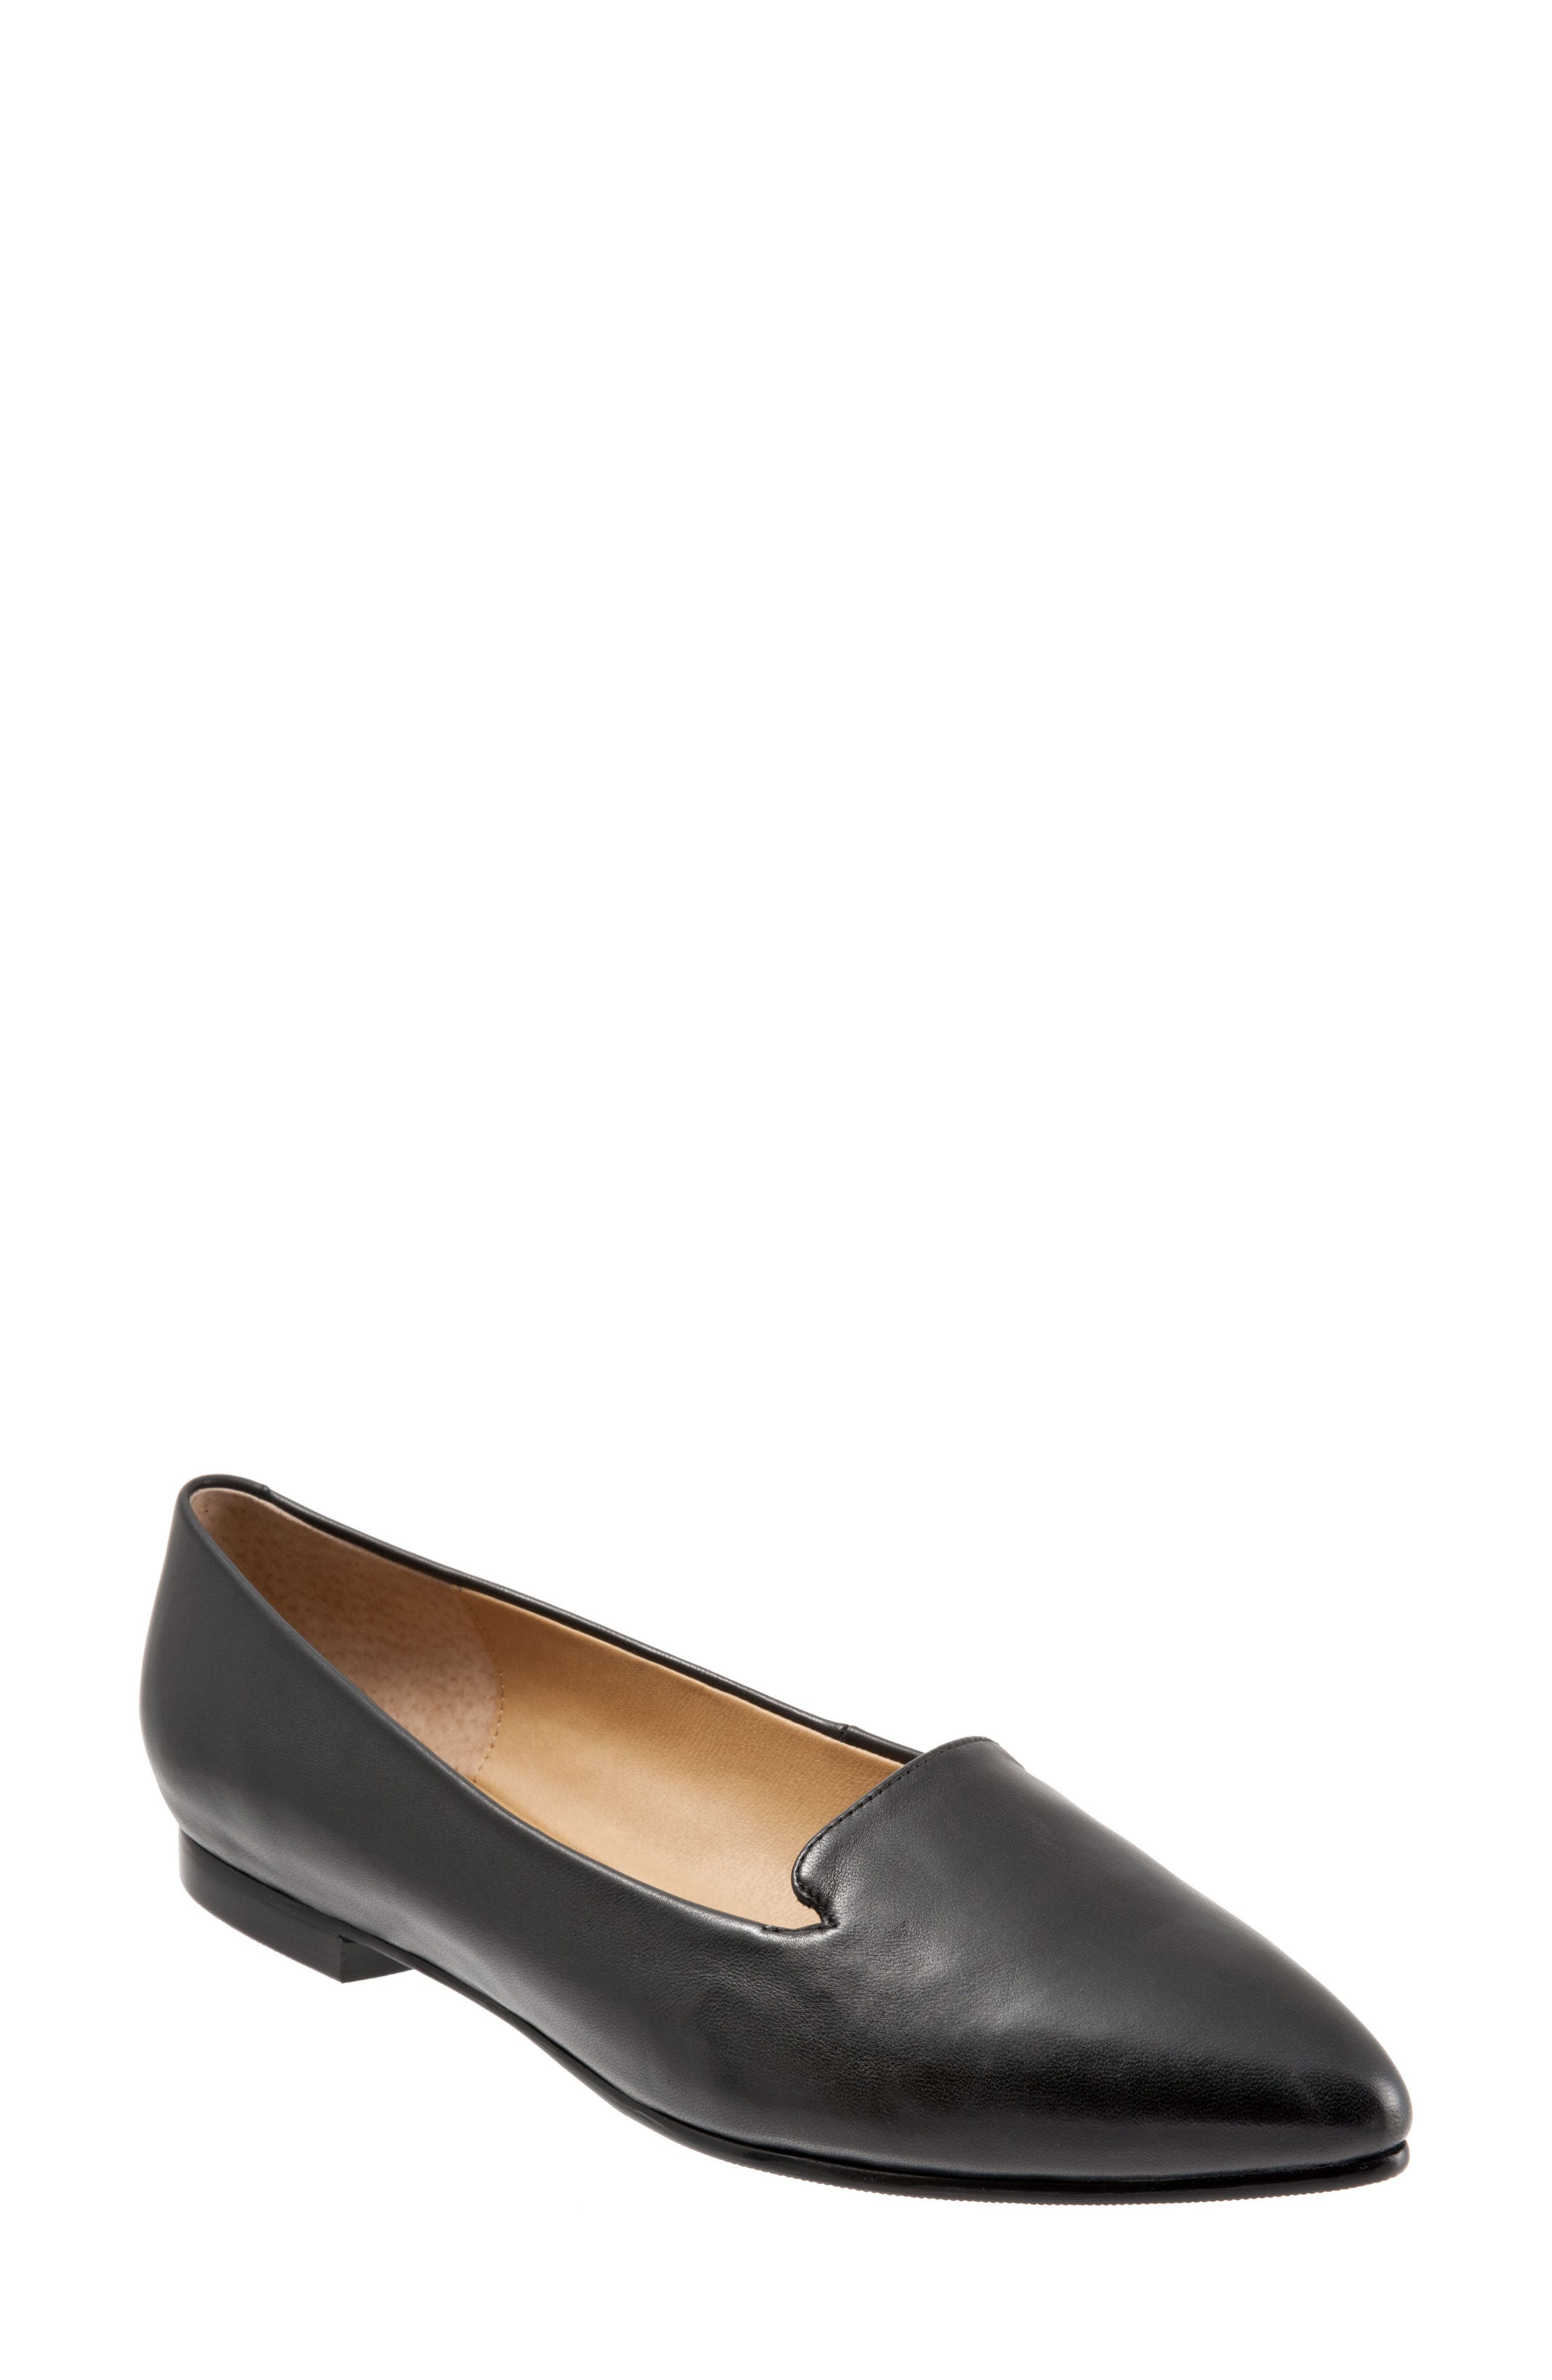 TROTTERS Harlowe Pointy Toe Loafer, Main, color, BLACK LEATHER